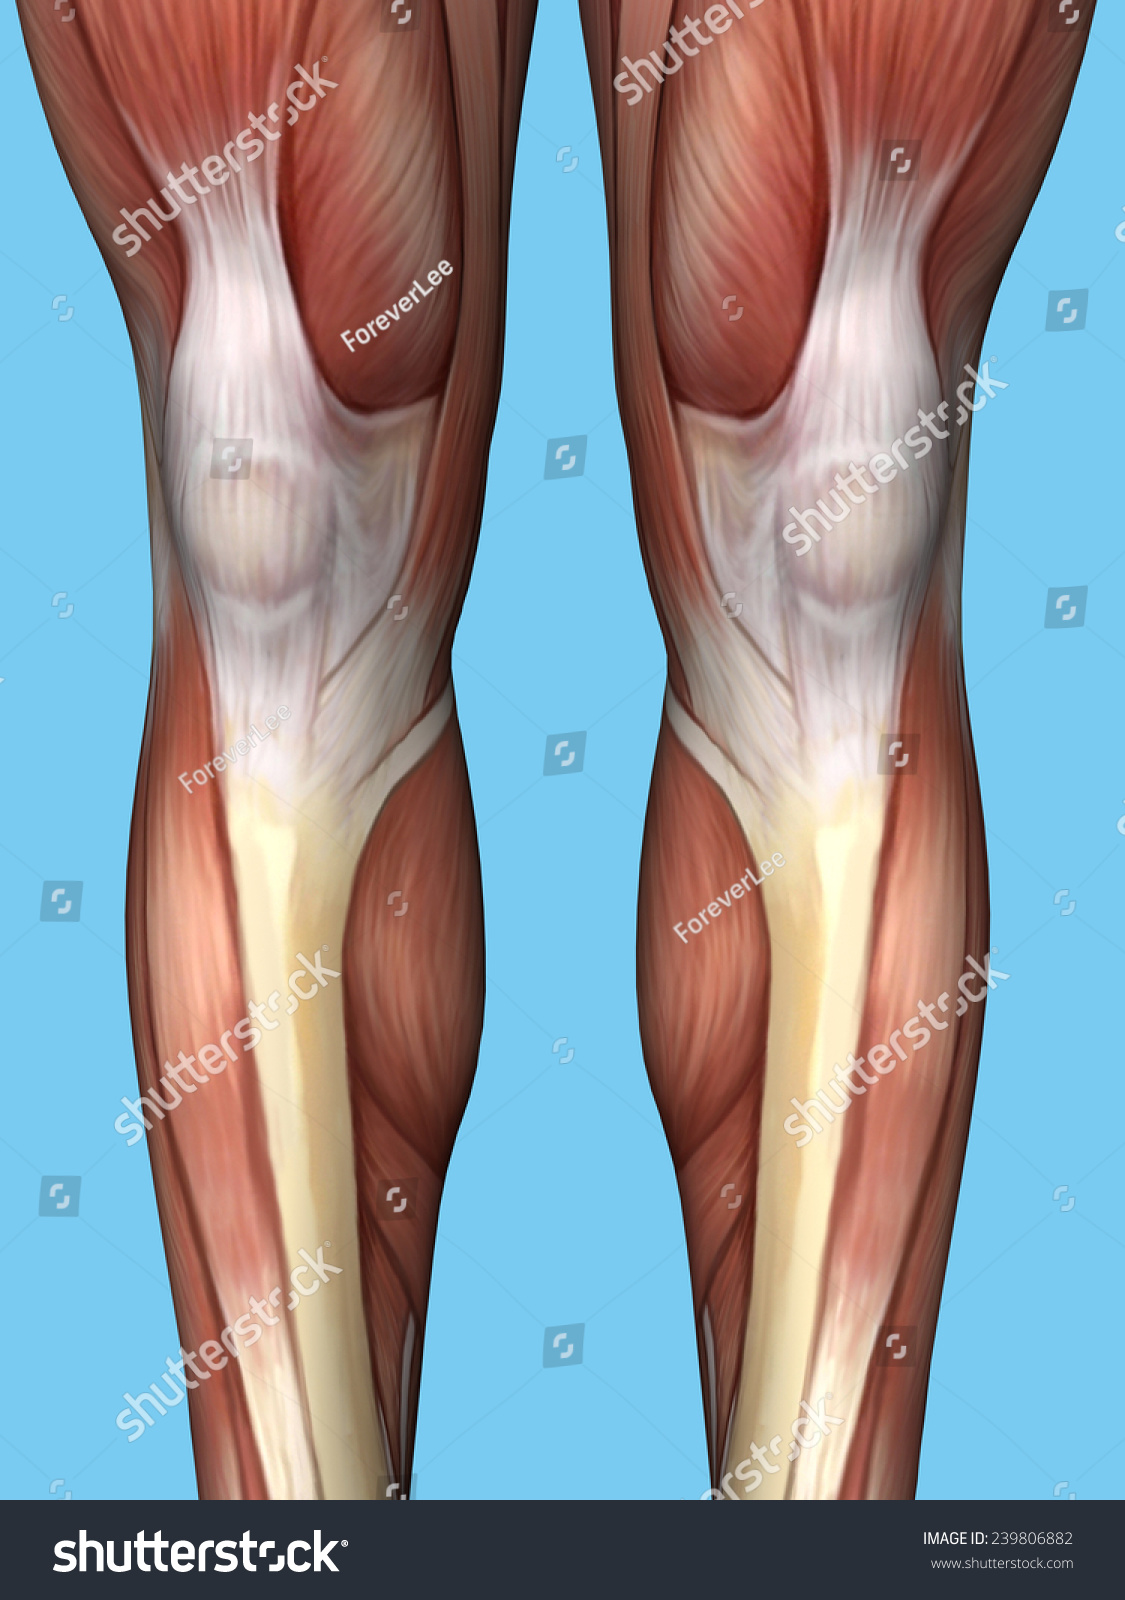 Anatomy Back Leg Featuring Quadriceps Hamstrings Stockillustration